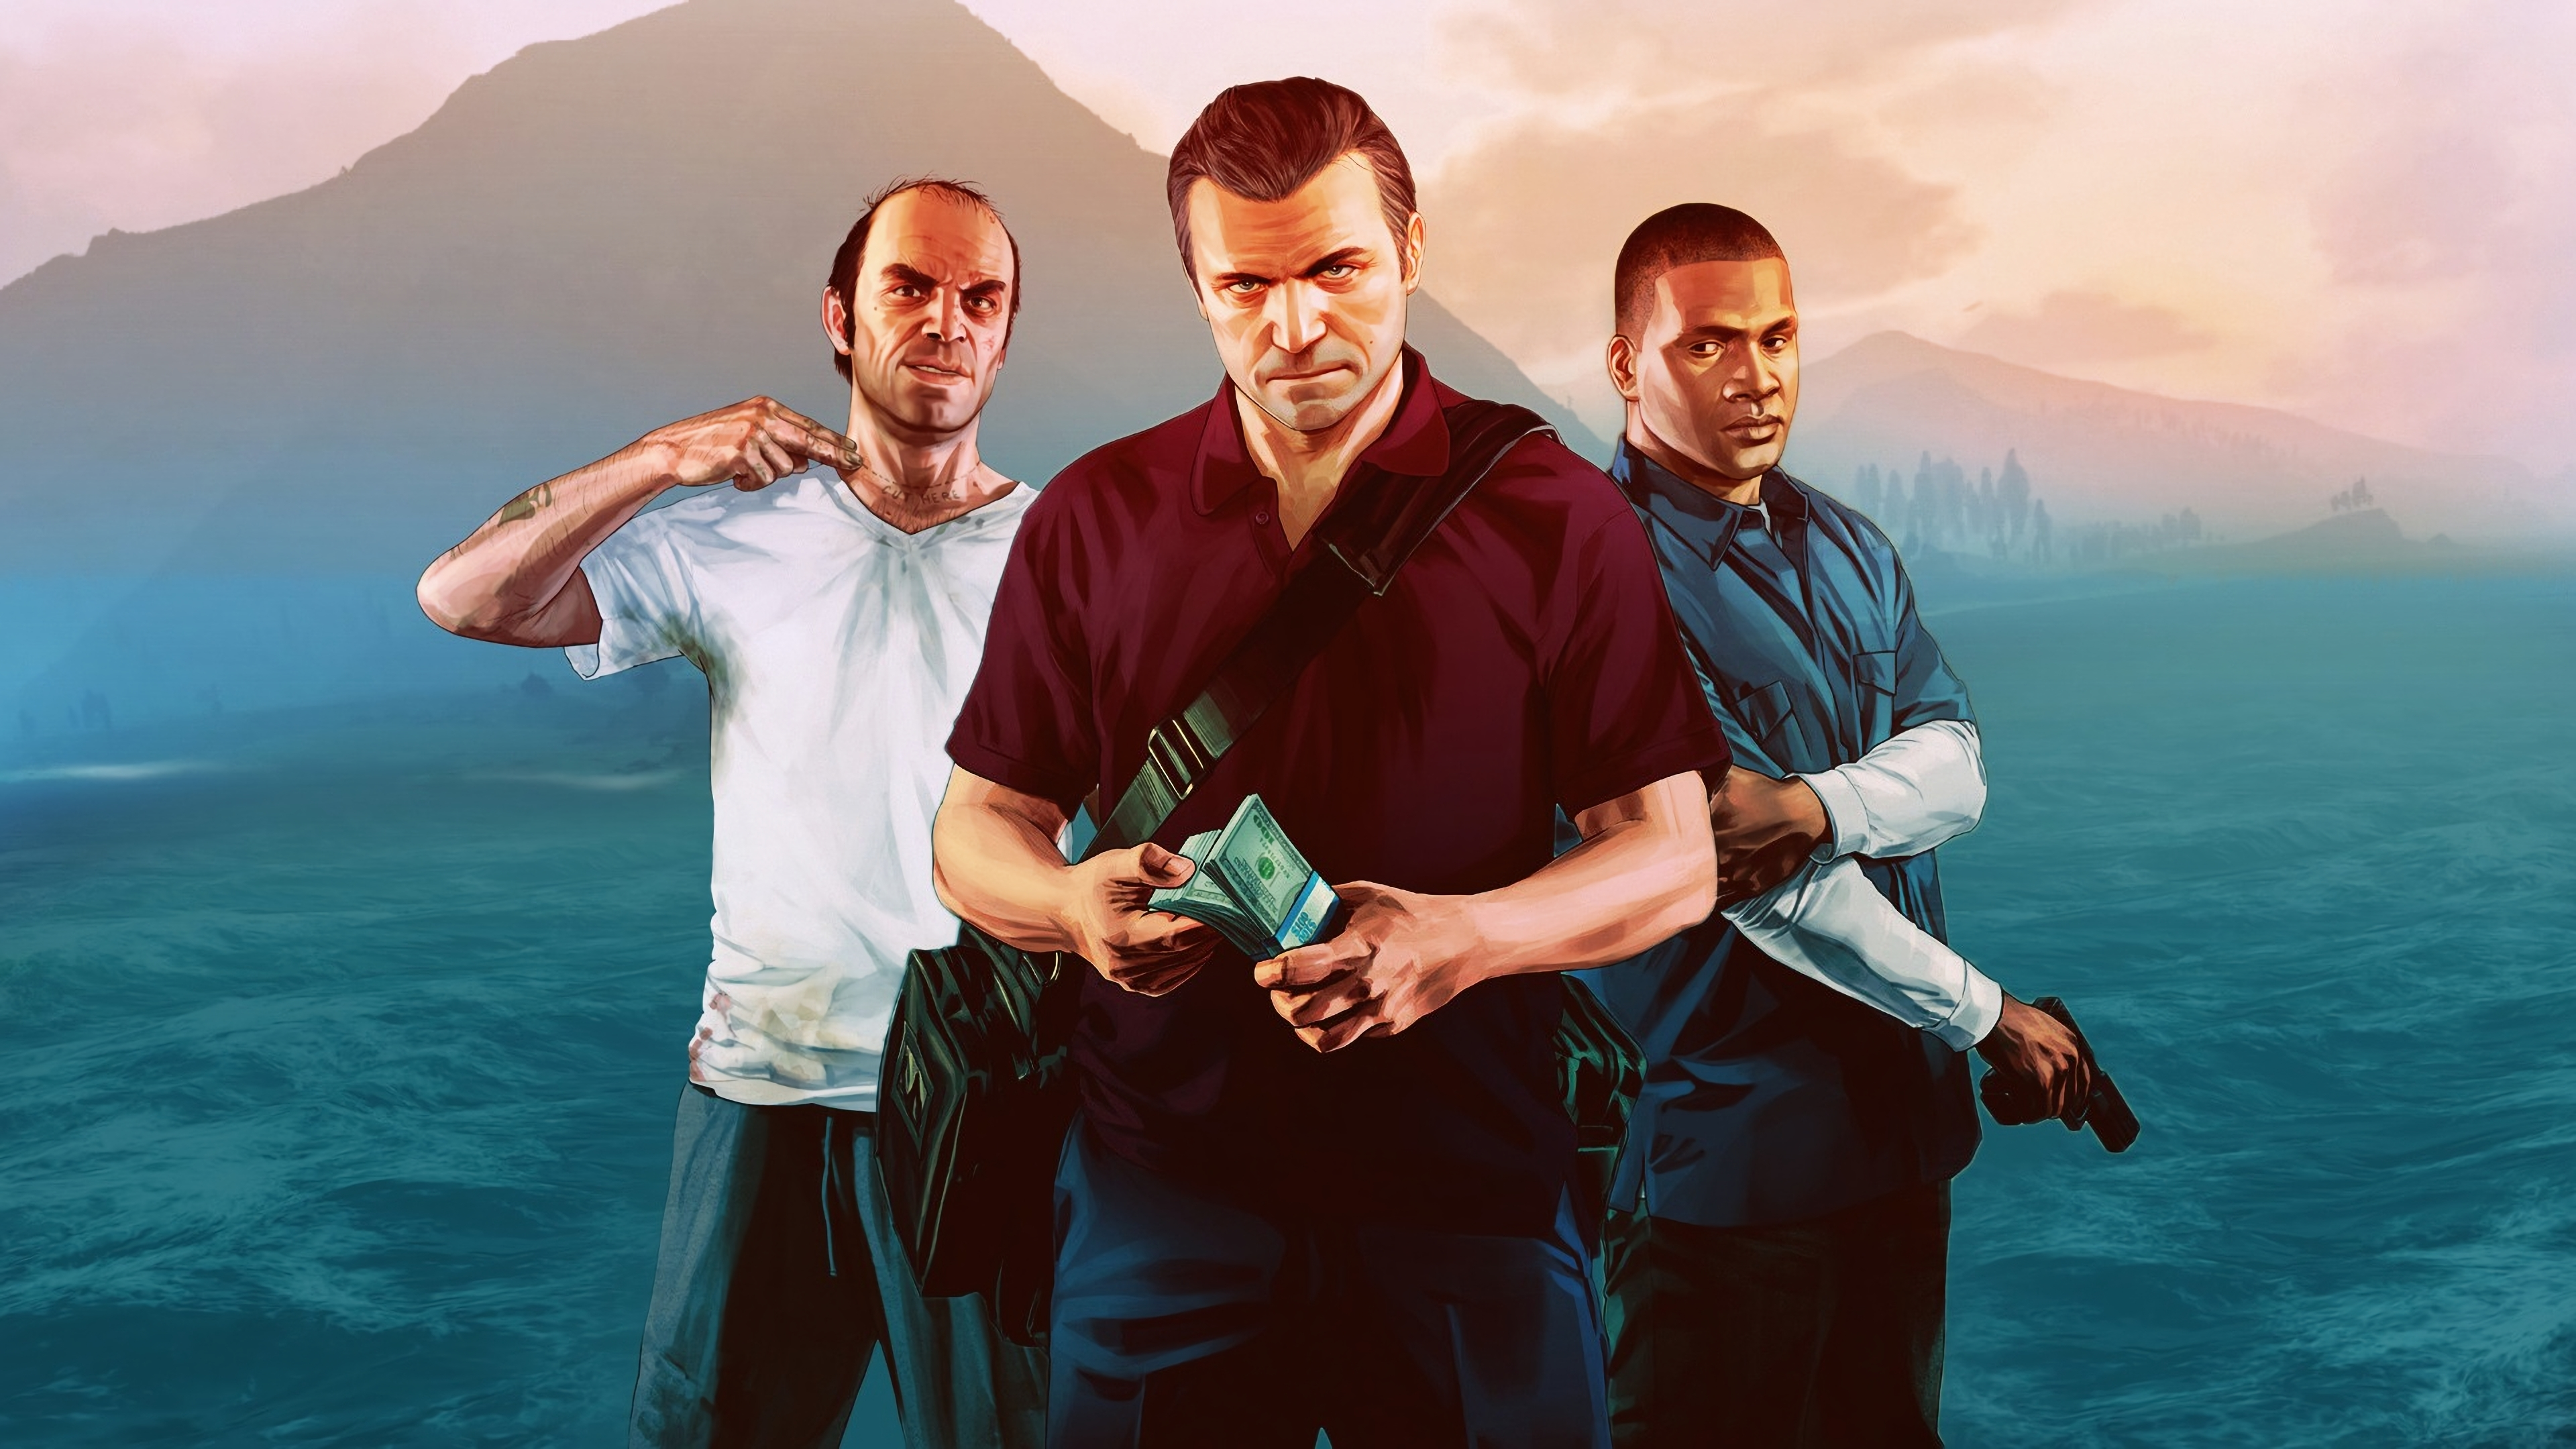 3840x2160 Trevor Franklin And Michael In Gta 4k Wallpaper Hd Games 4k Wallpapers Images Photos And Background Wallpapers Den